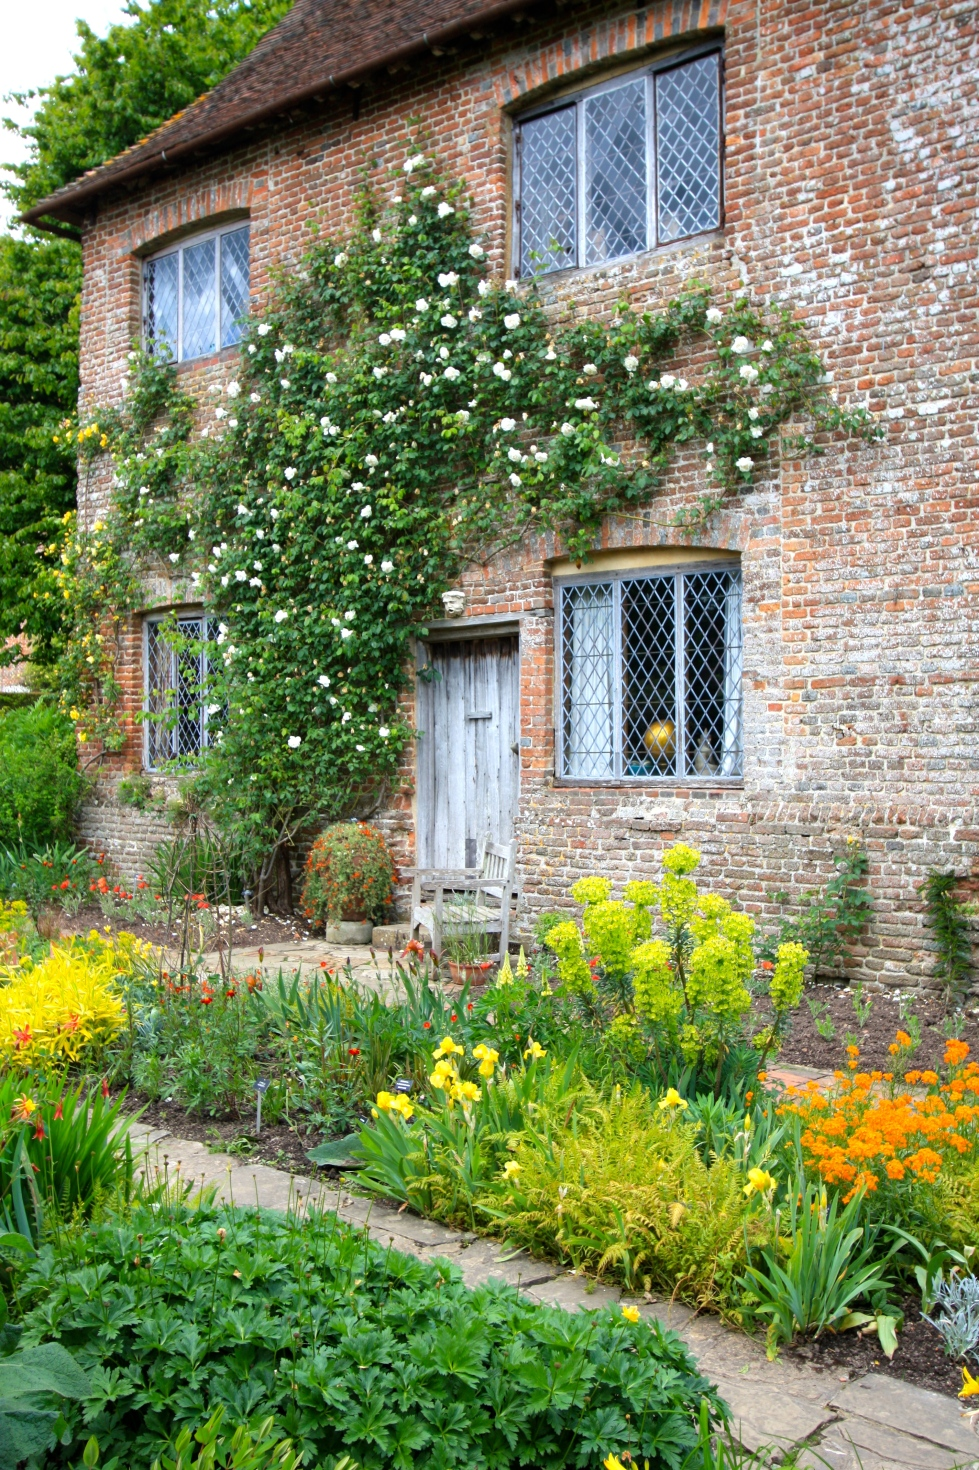 The Cottage Garden, Sissinghurst, May 2014